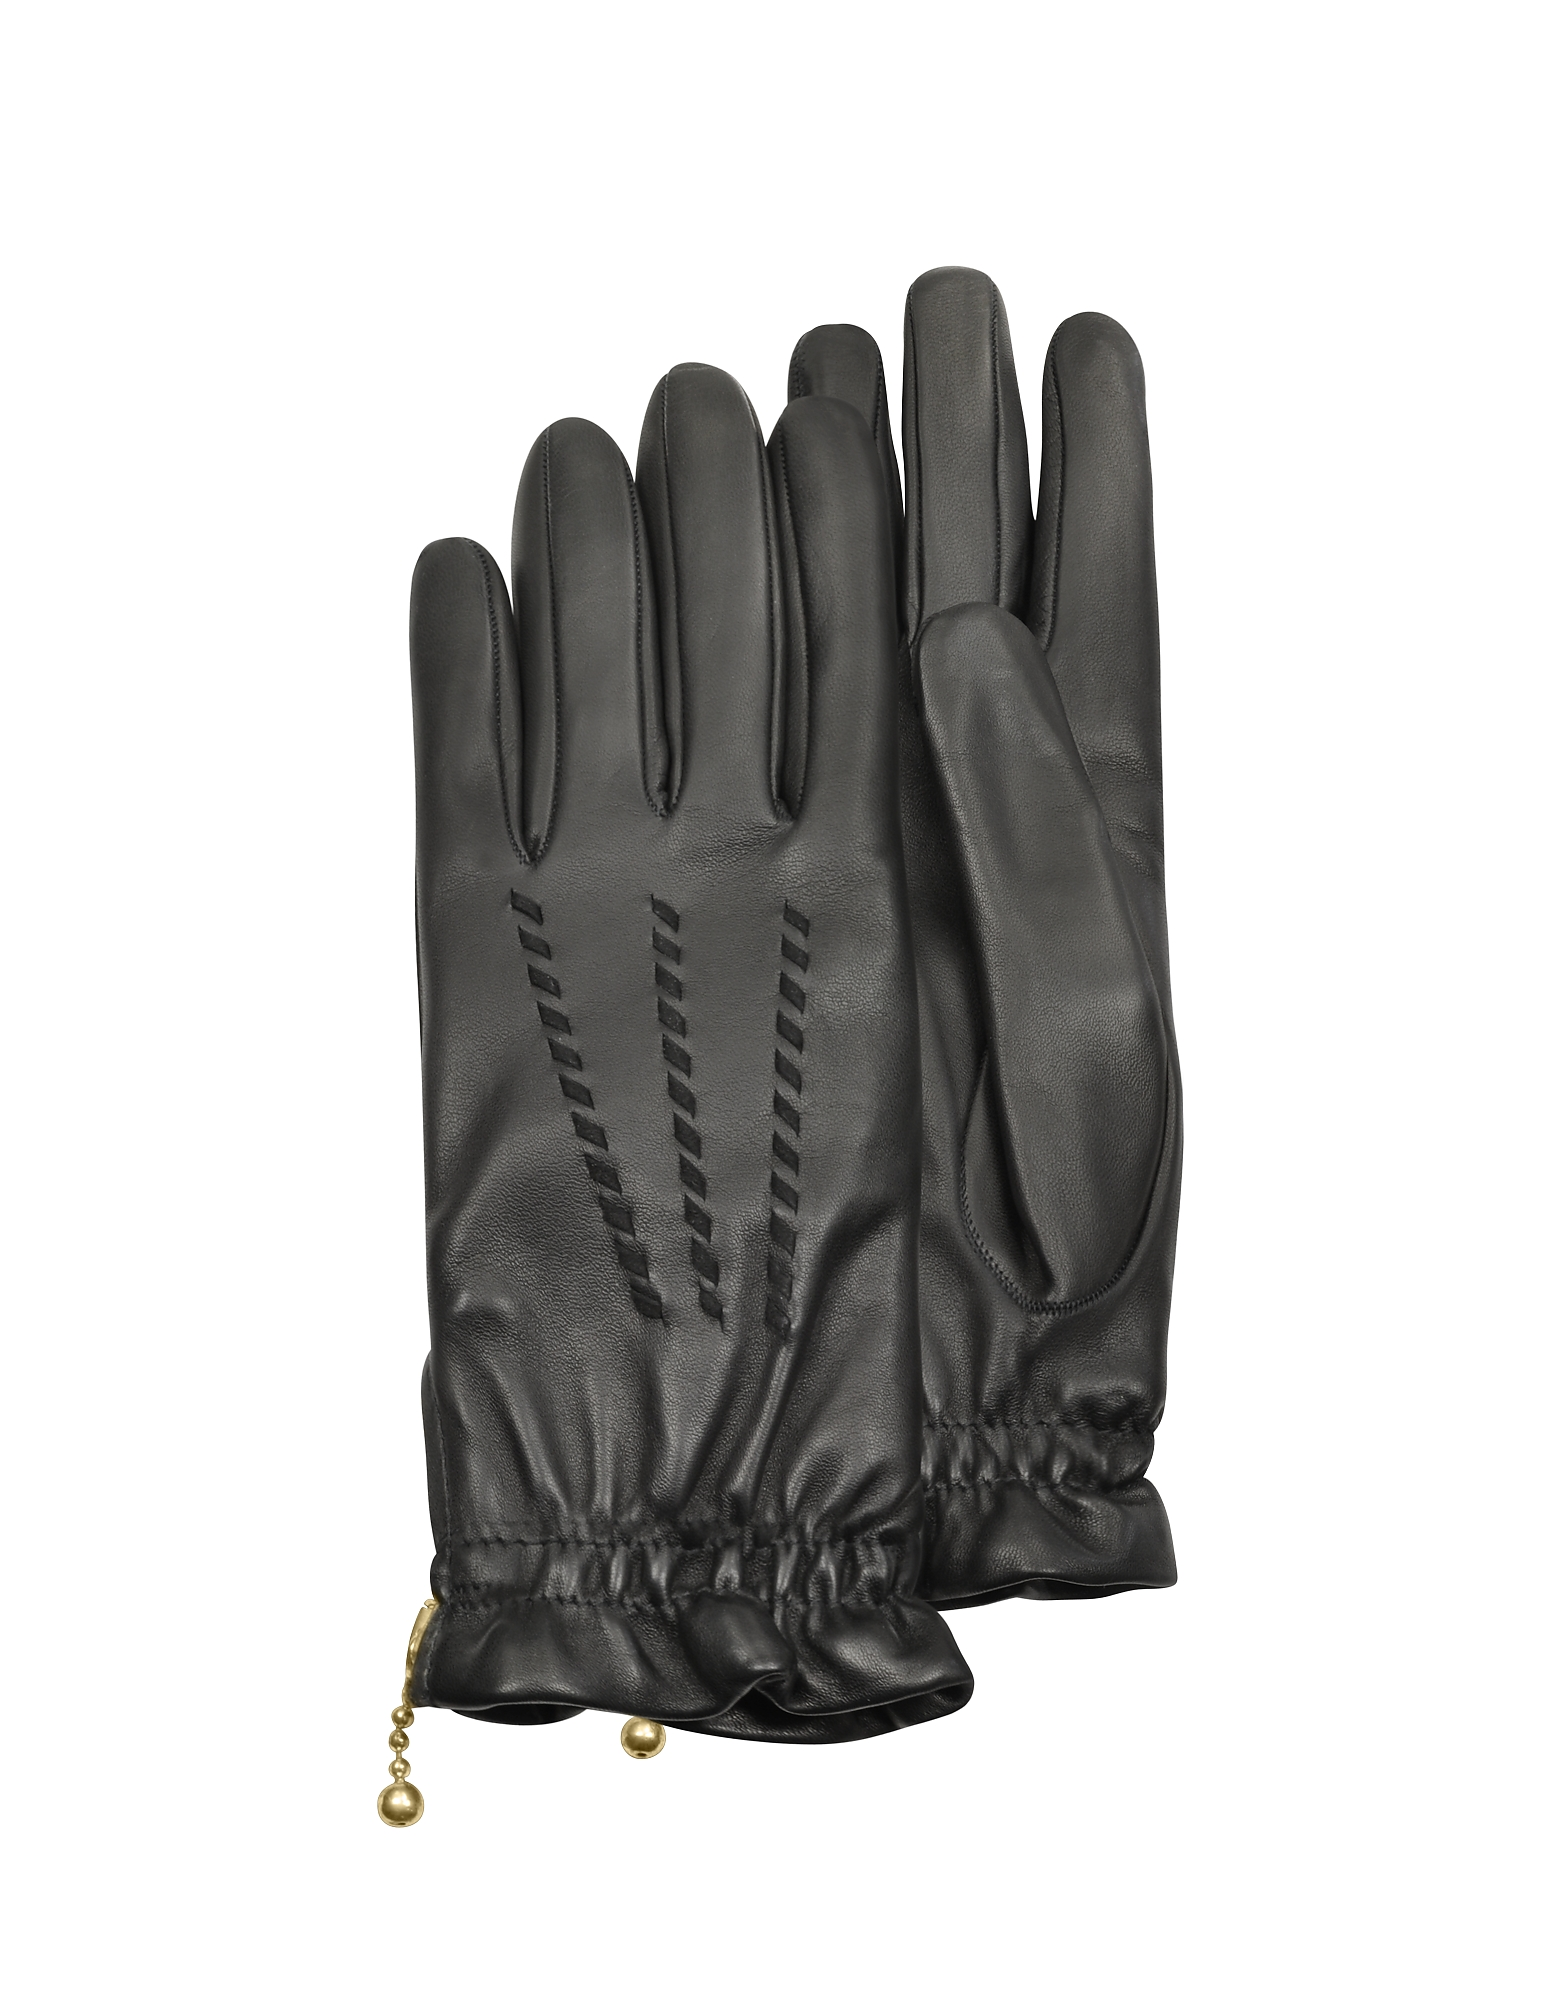 Forzieri Designer Women's Gloves, Women's Embroidered Black Calf Leather Gloves